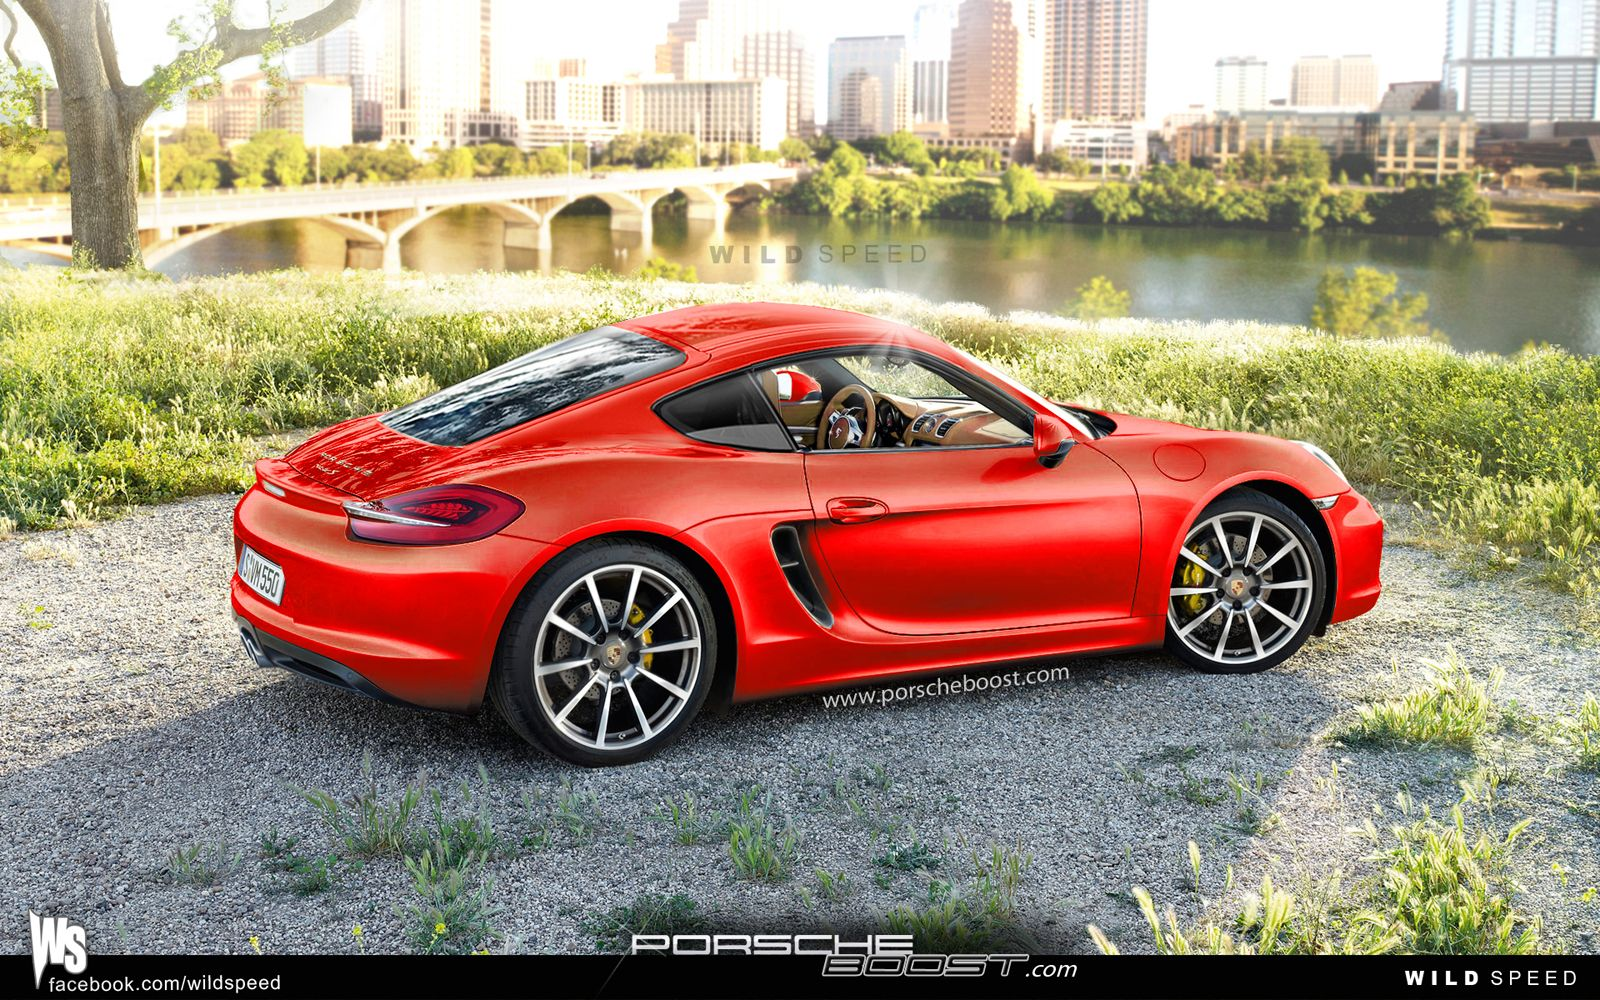 The new porsche boxster s a real leap forward in design for the new boxster looks like a propper roadster now best in class